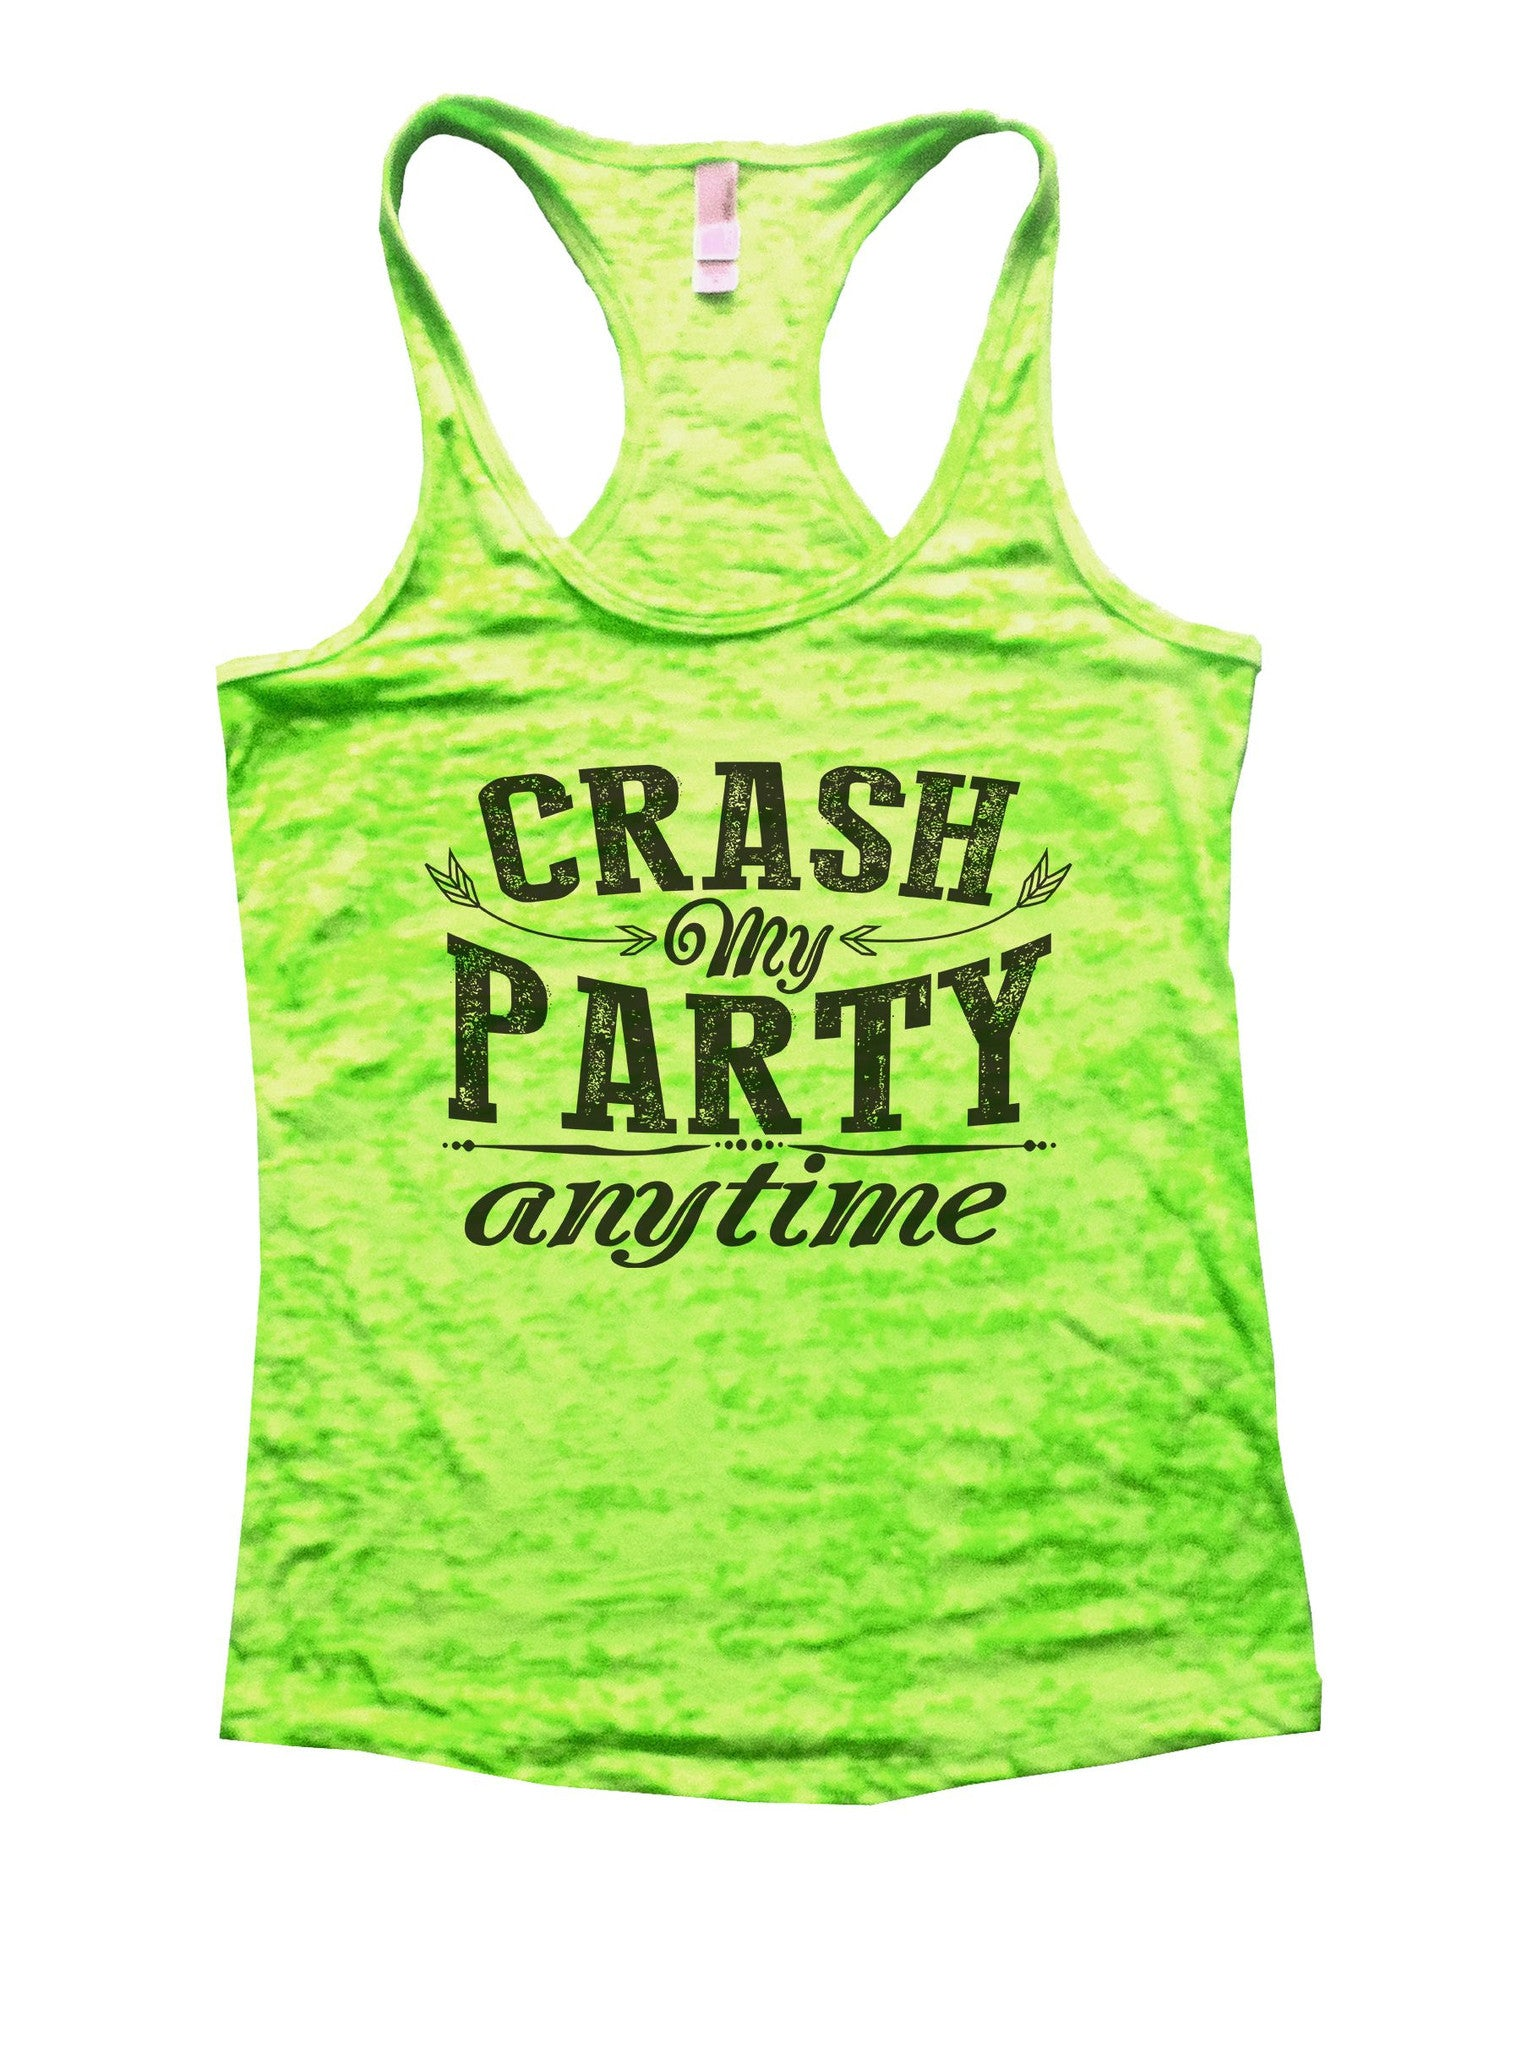 Crash My Party Anytime Burnout Tank Top By BurnoutTankTops.com - 980 - Funny Shirts Tank Tops Burnouts and Triblends  - 1